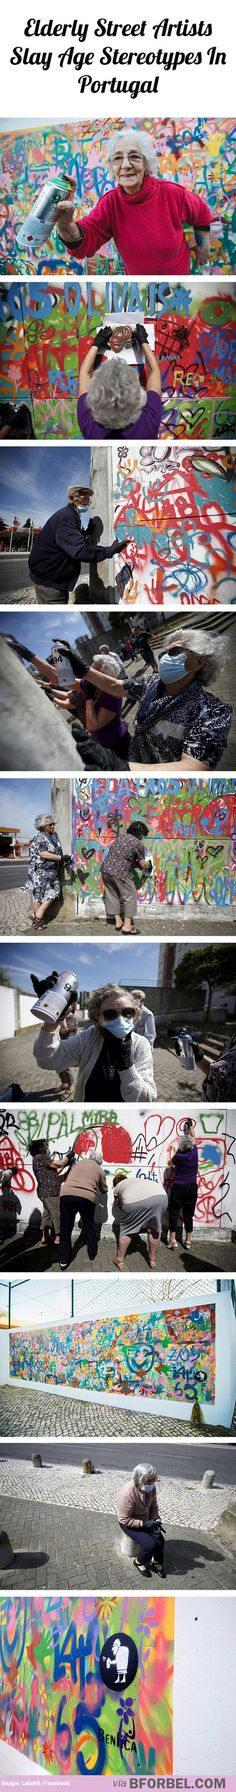 Elderly street artists slay age stereotypes in Portugal